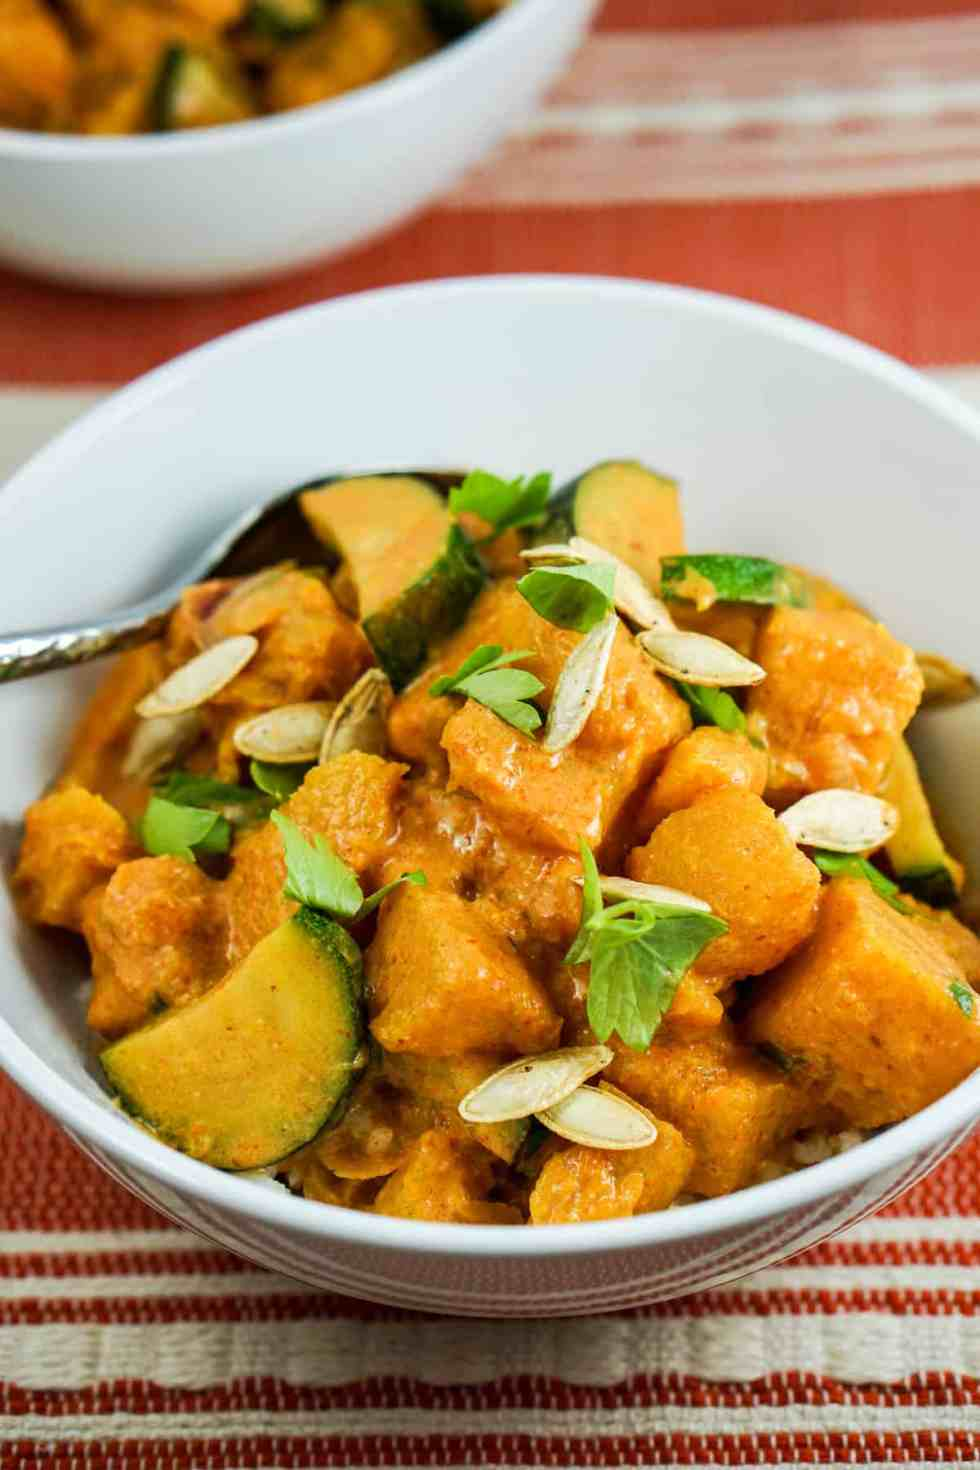 Pumpkin Coconut Red Curry Recipe - Healthy clean eating curry recipe using real whole food. Great served by itself or over rice or zoodles.